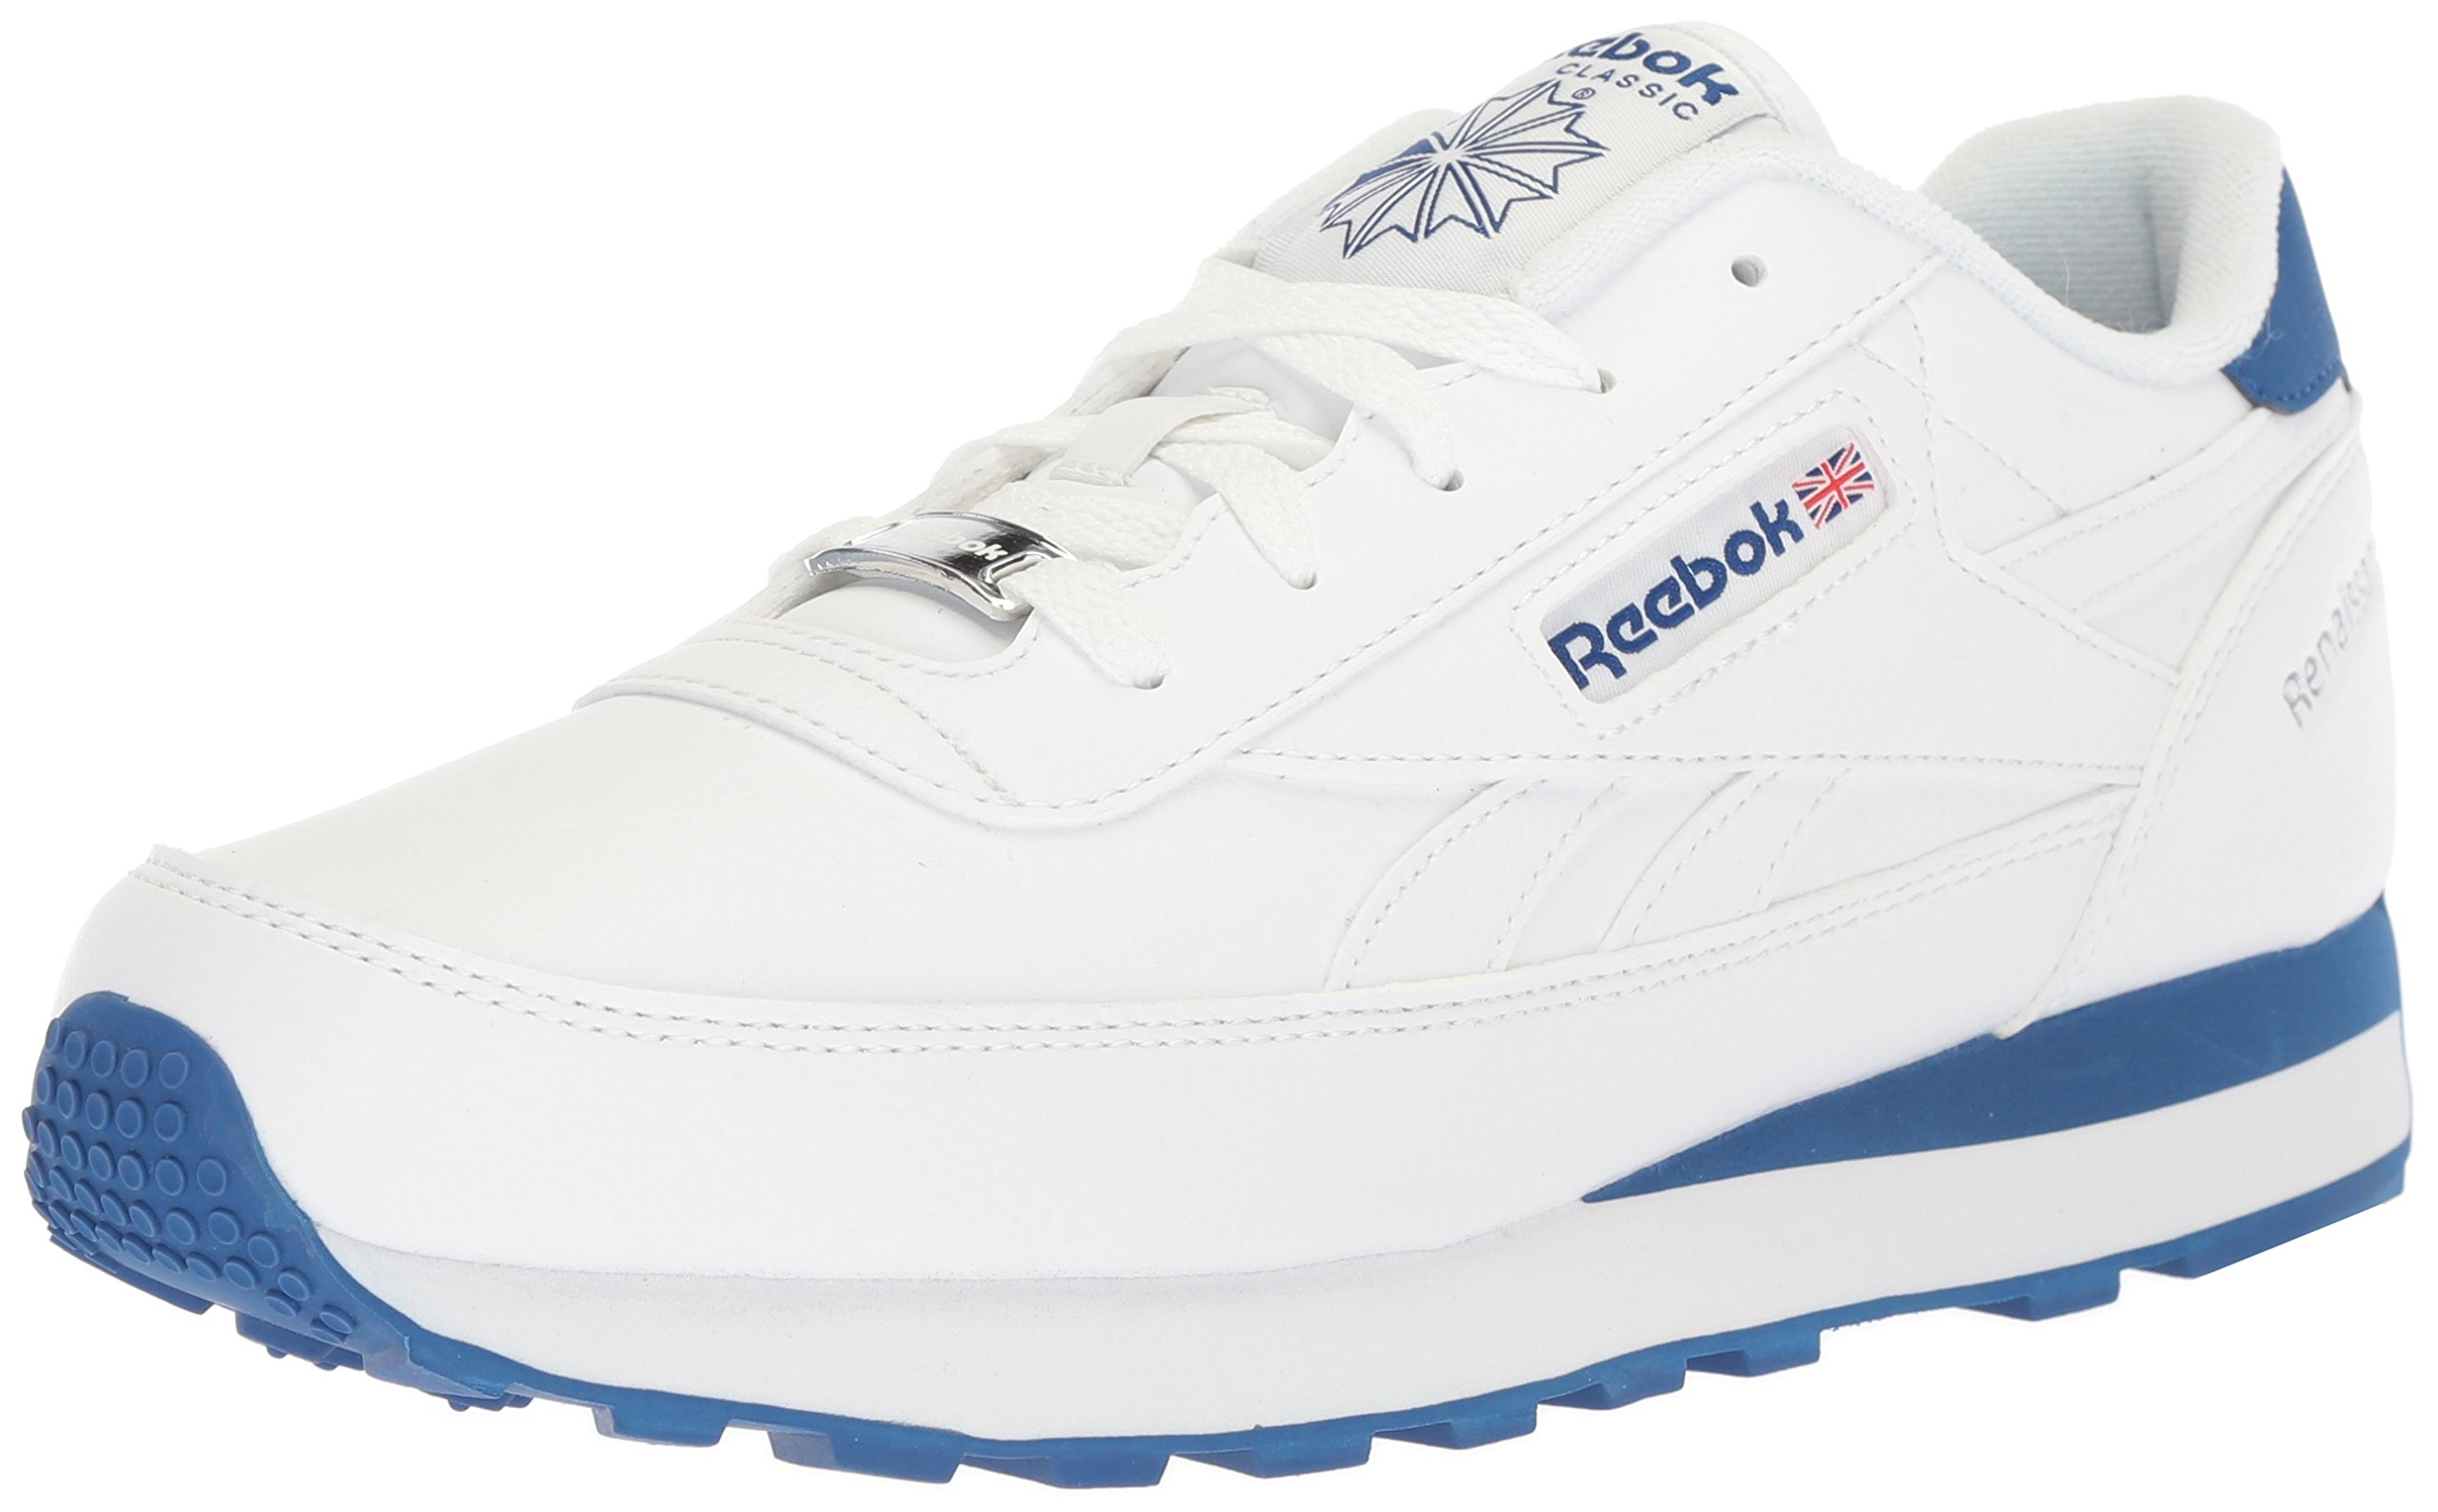 Reebok Men's Classic Renaissance Cross Trainer, White/Collegiate Royal/Silver, 6.5 M US